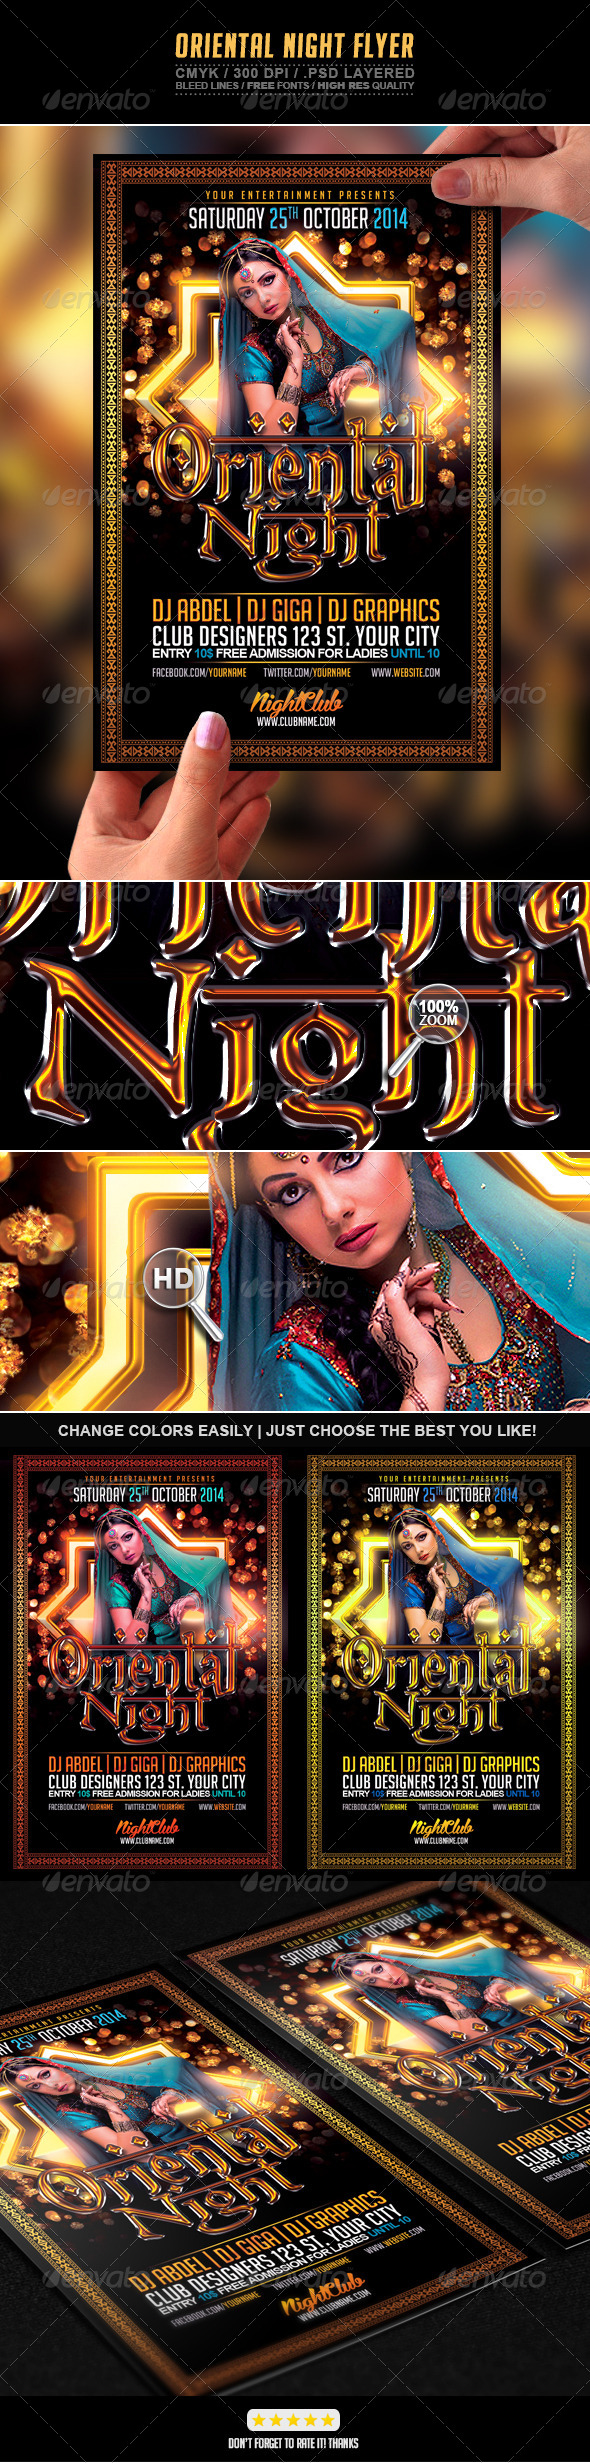 Oriental Night Flyer PSD Template - Events Flyers